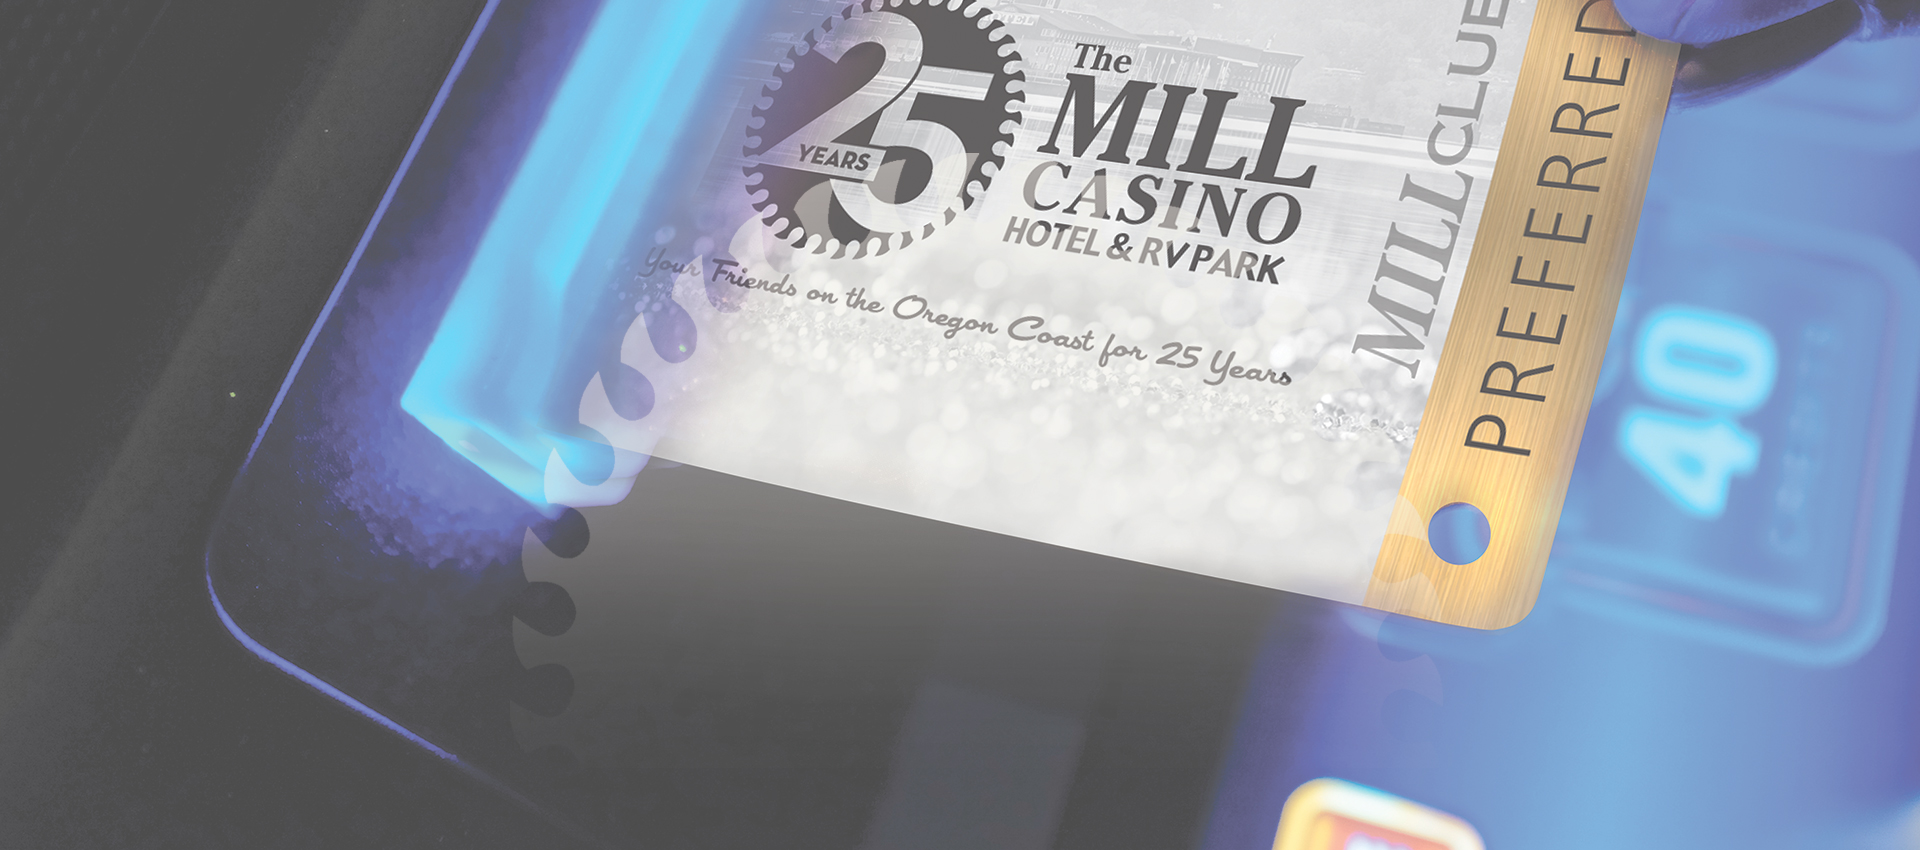 The Mill Casino Preferred Card going into card slot